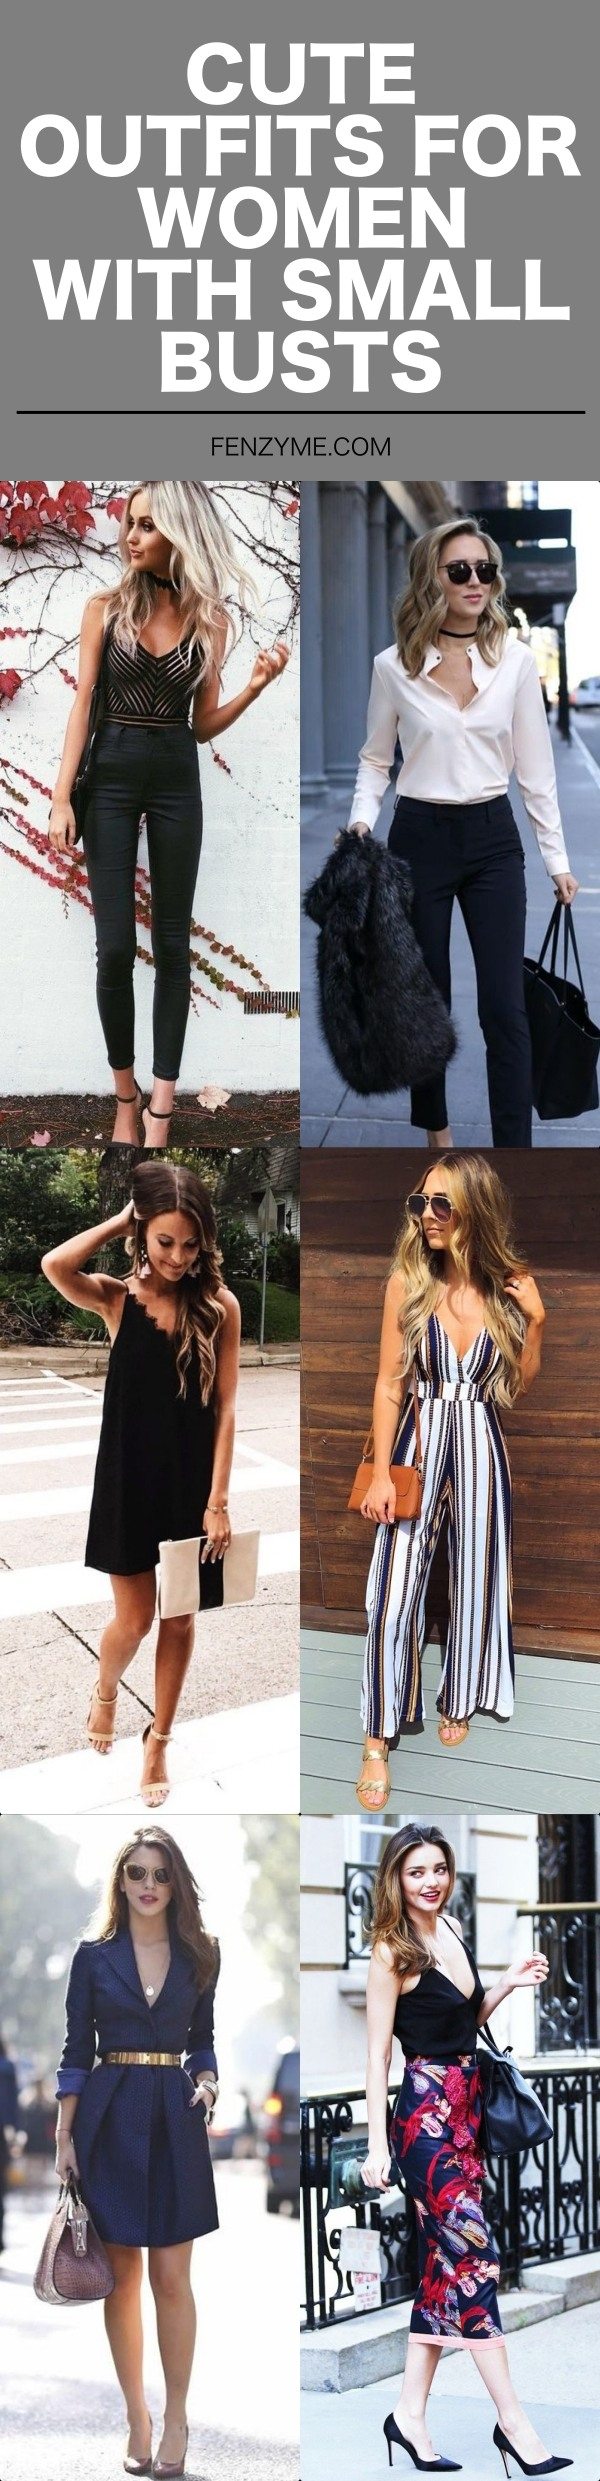 Cute Outfits for Women with Small Busts